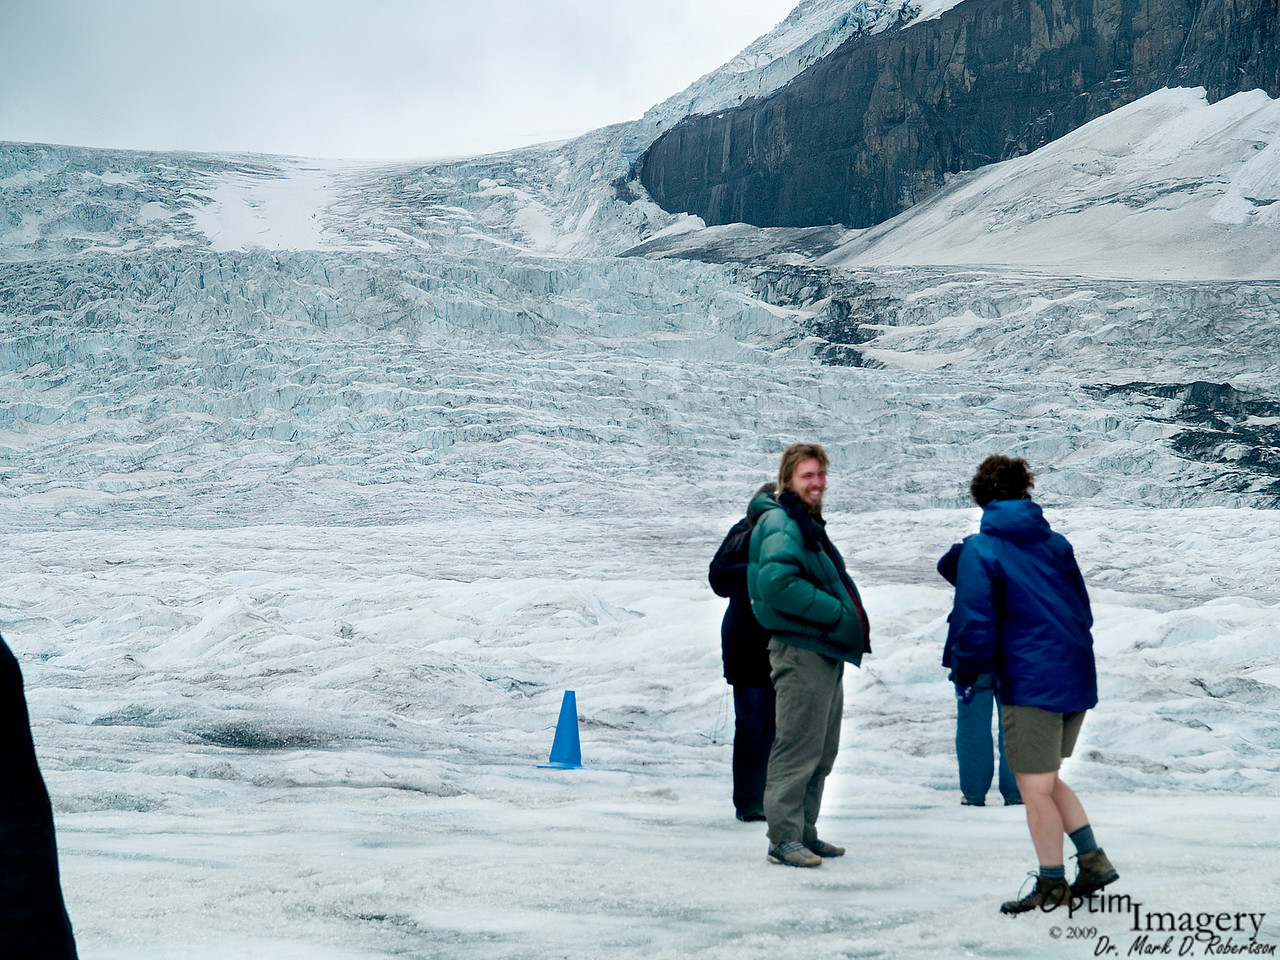 The walking area was cordoned off with cones.  The guide and all reading material available emphasized that there are hidden crevasses lurking just outside the safety zone and all over the rest of the glacier.  Reportedly, they do occasionally loose people who decide to wander out across the rest of the glacier.